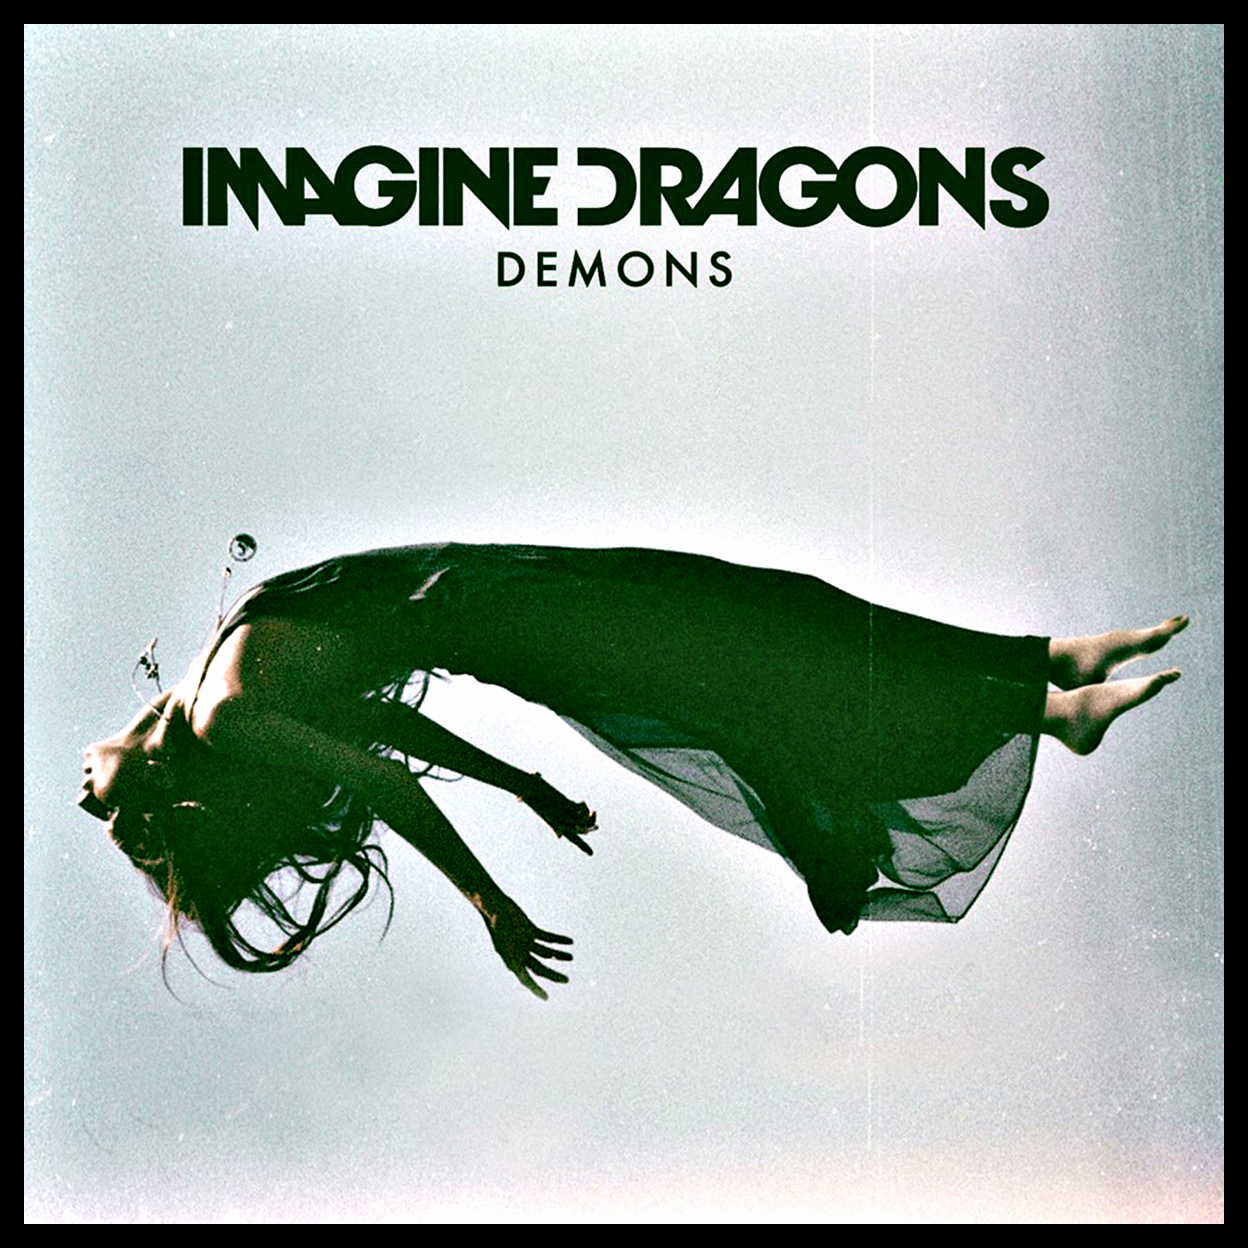 imagine dragons monster album cover - photo #18